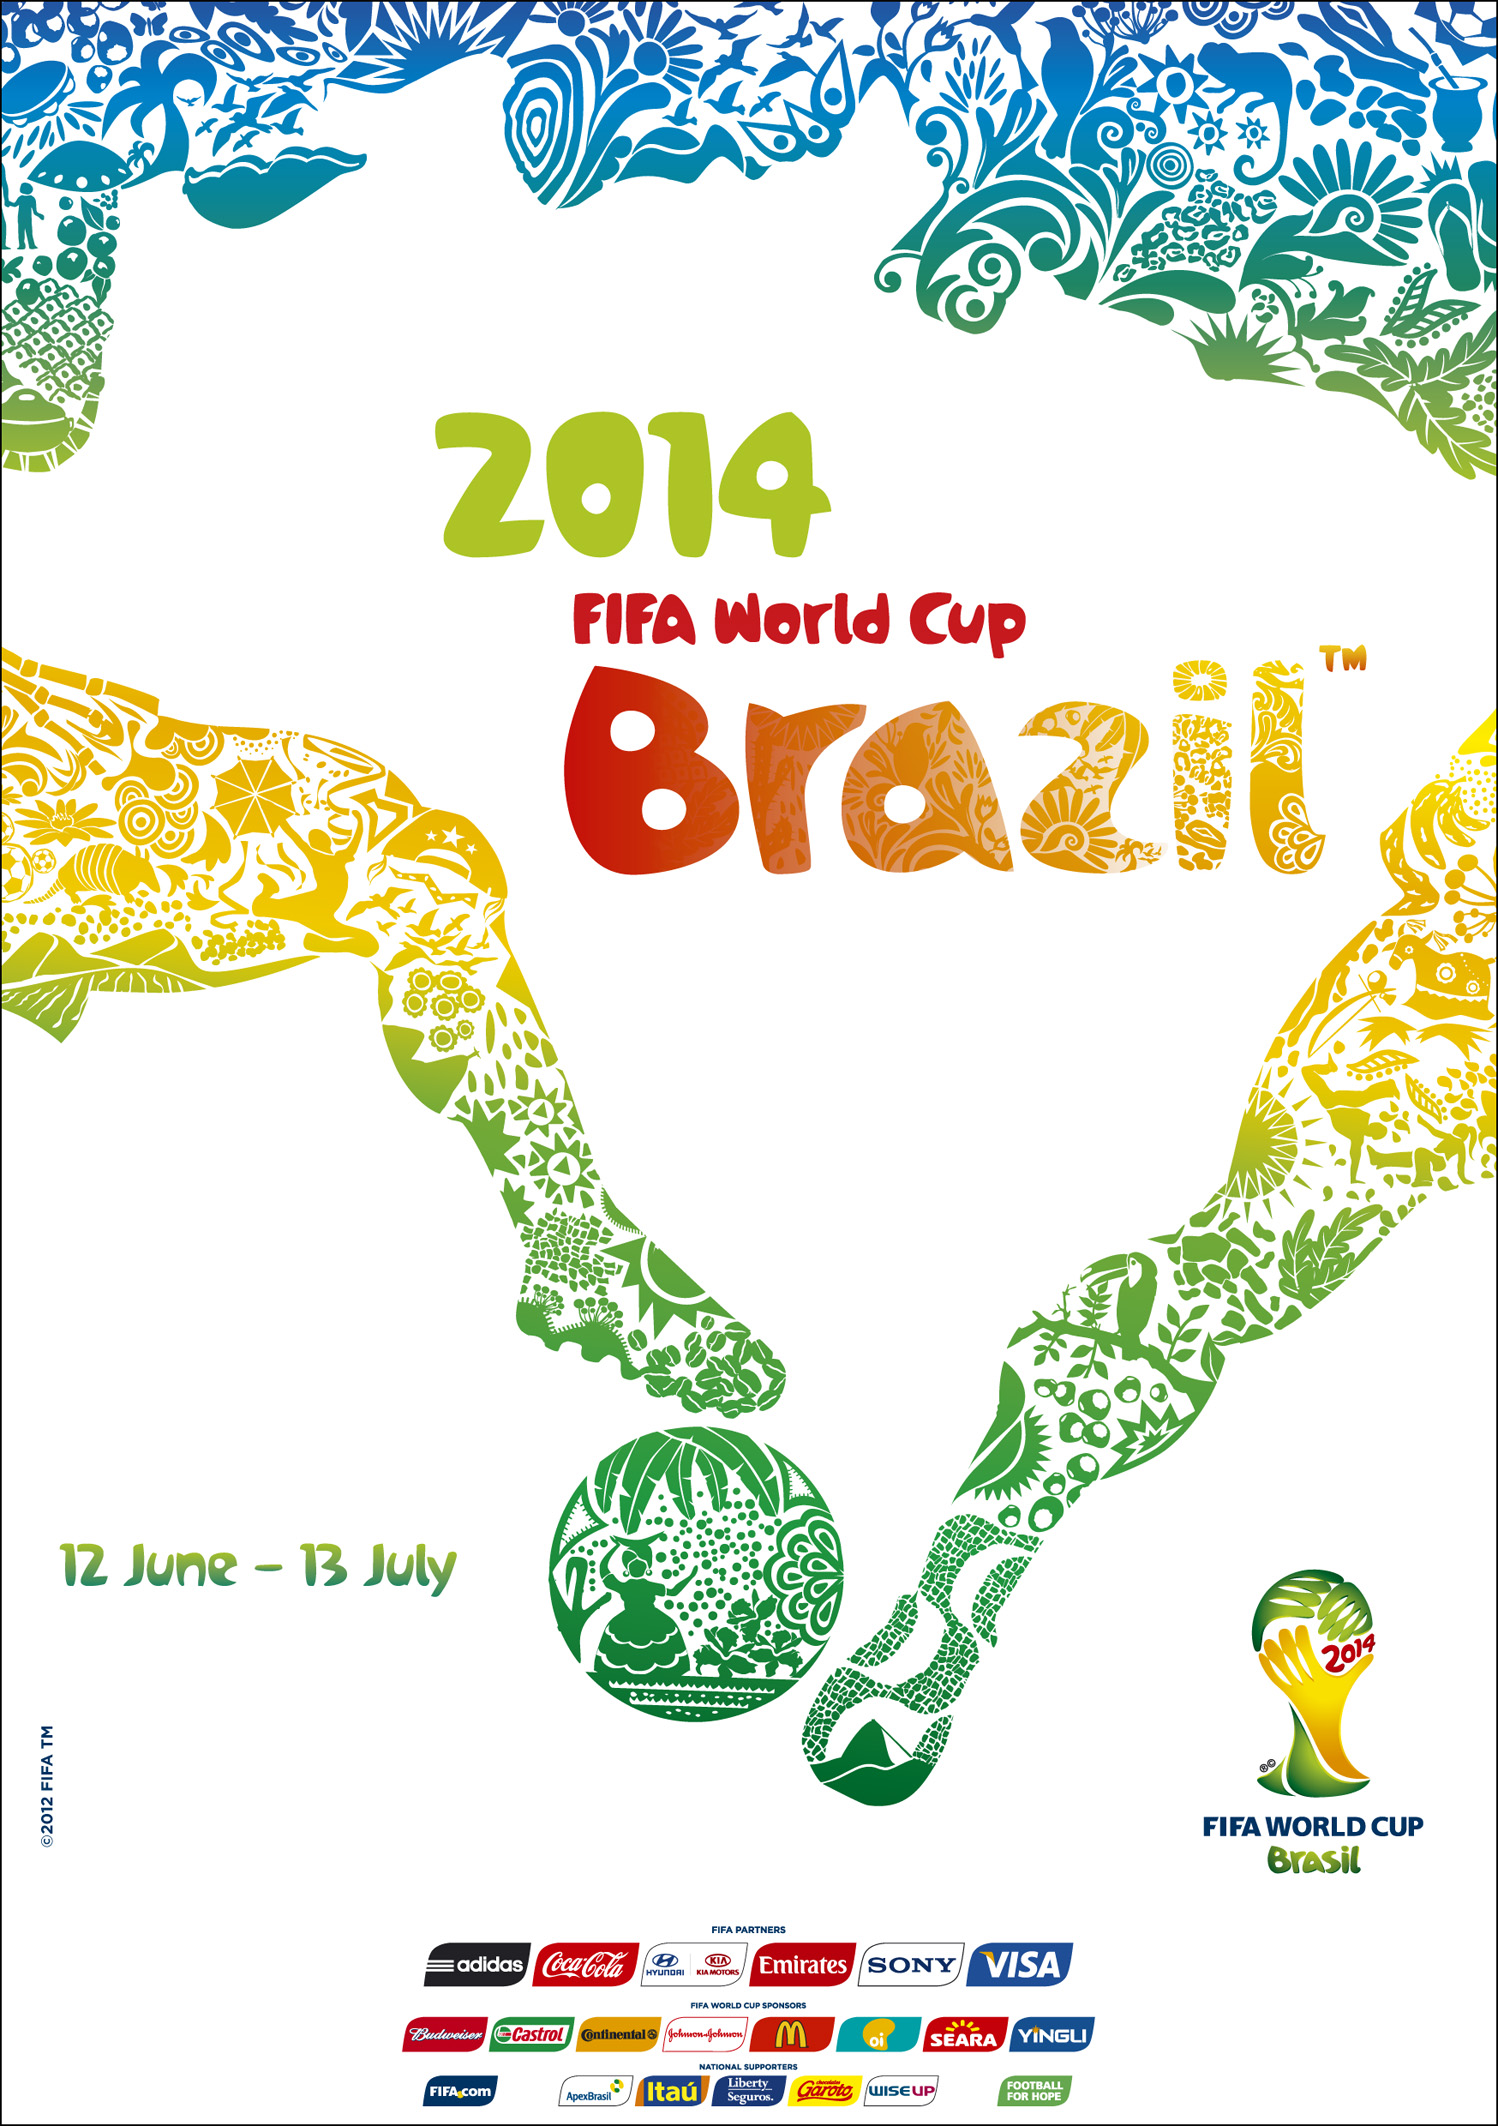 brazil unveils 2014 fifa world cup poster brazil the guide